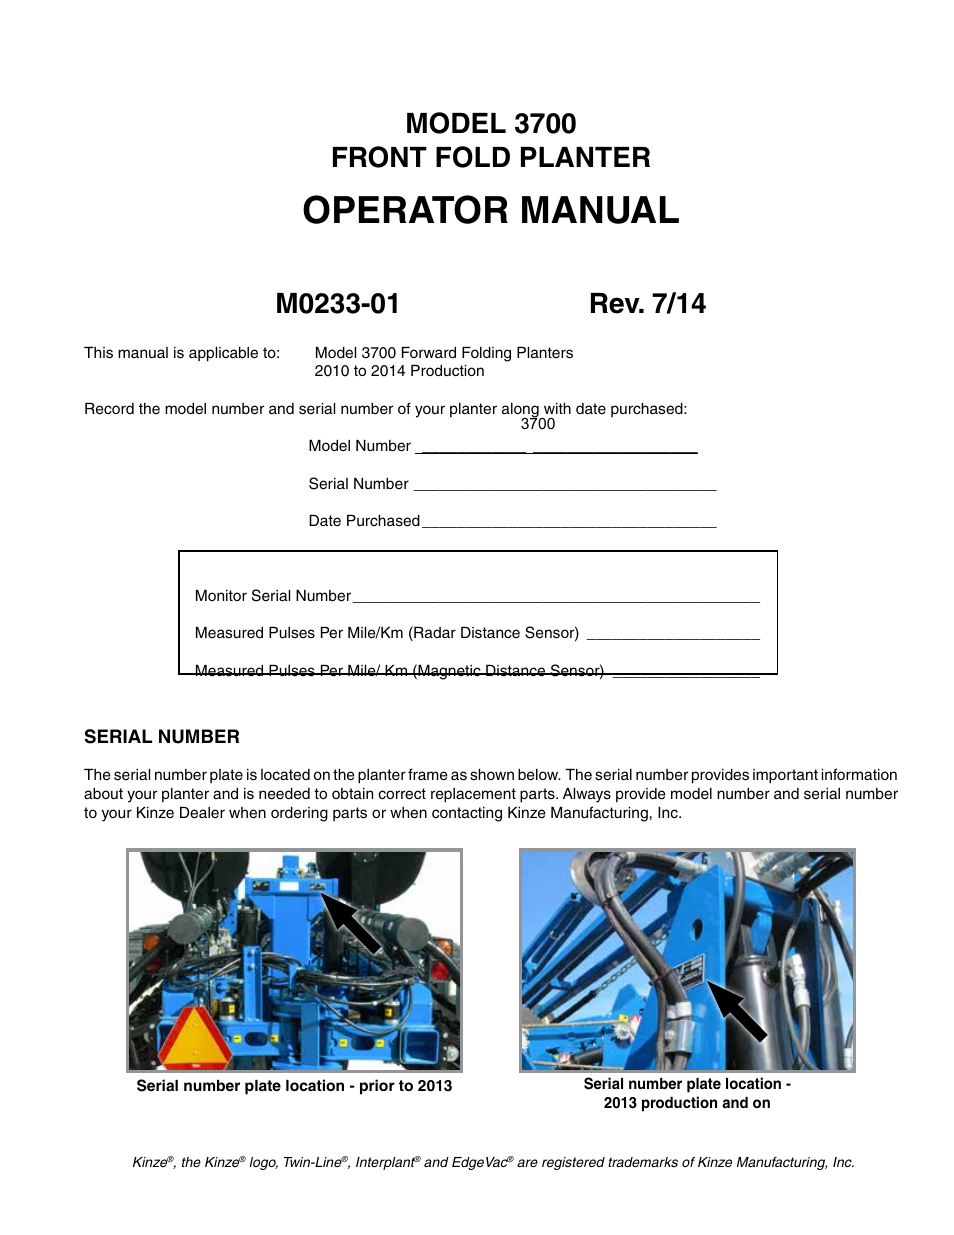 Kinze 3700 Front Folding Planter Rev 7 14 User Manual 172 Pages